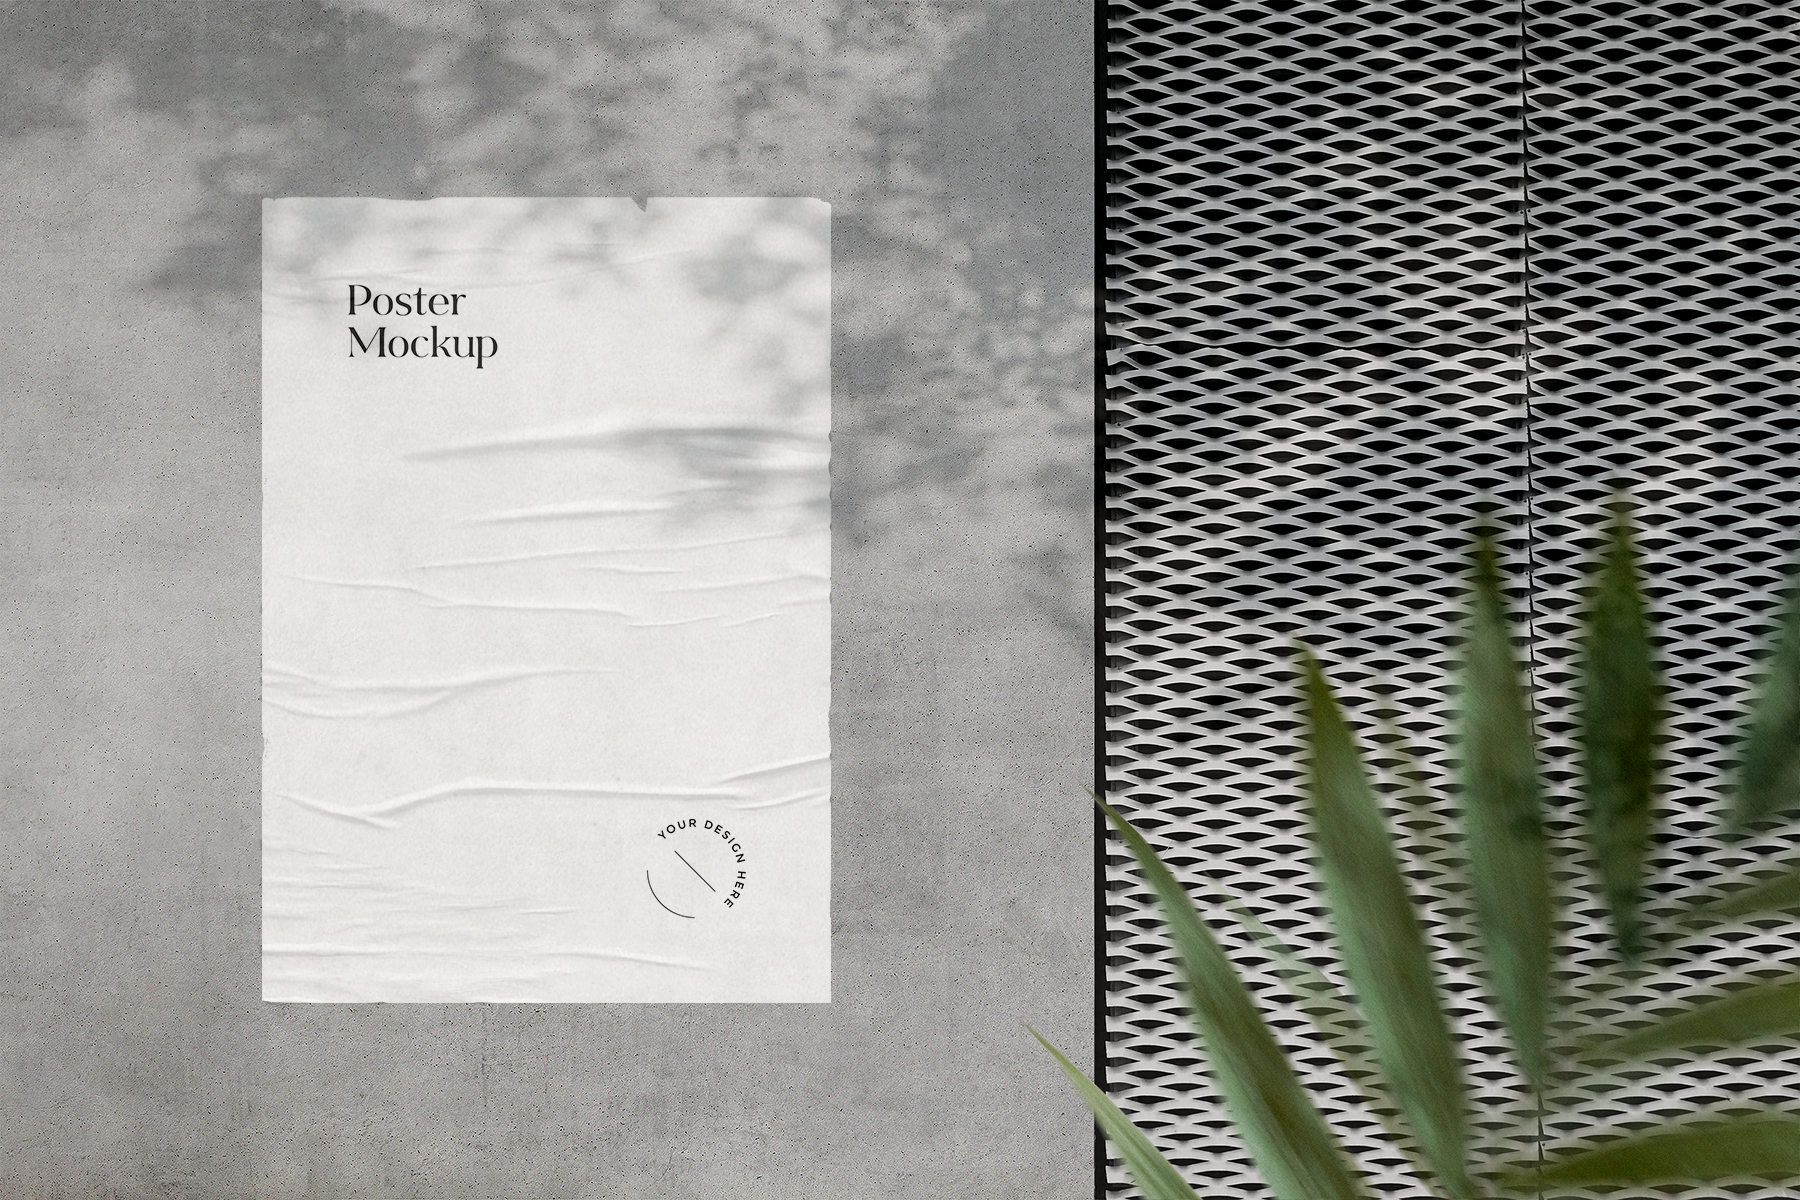 Free Wrinkled Poster on Wall Mockup